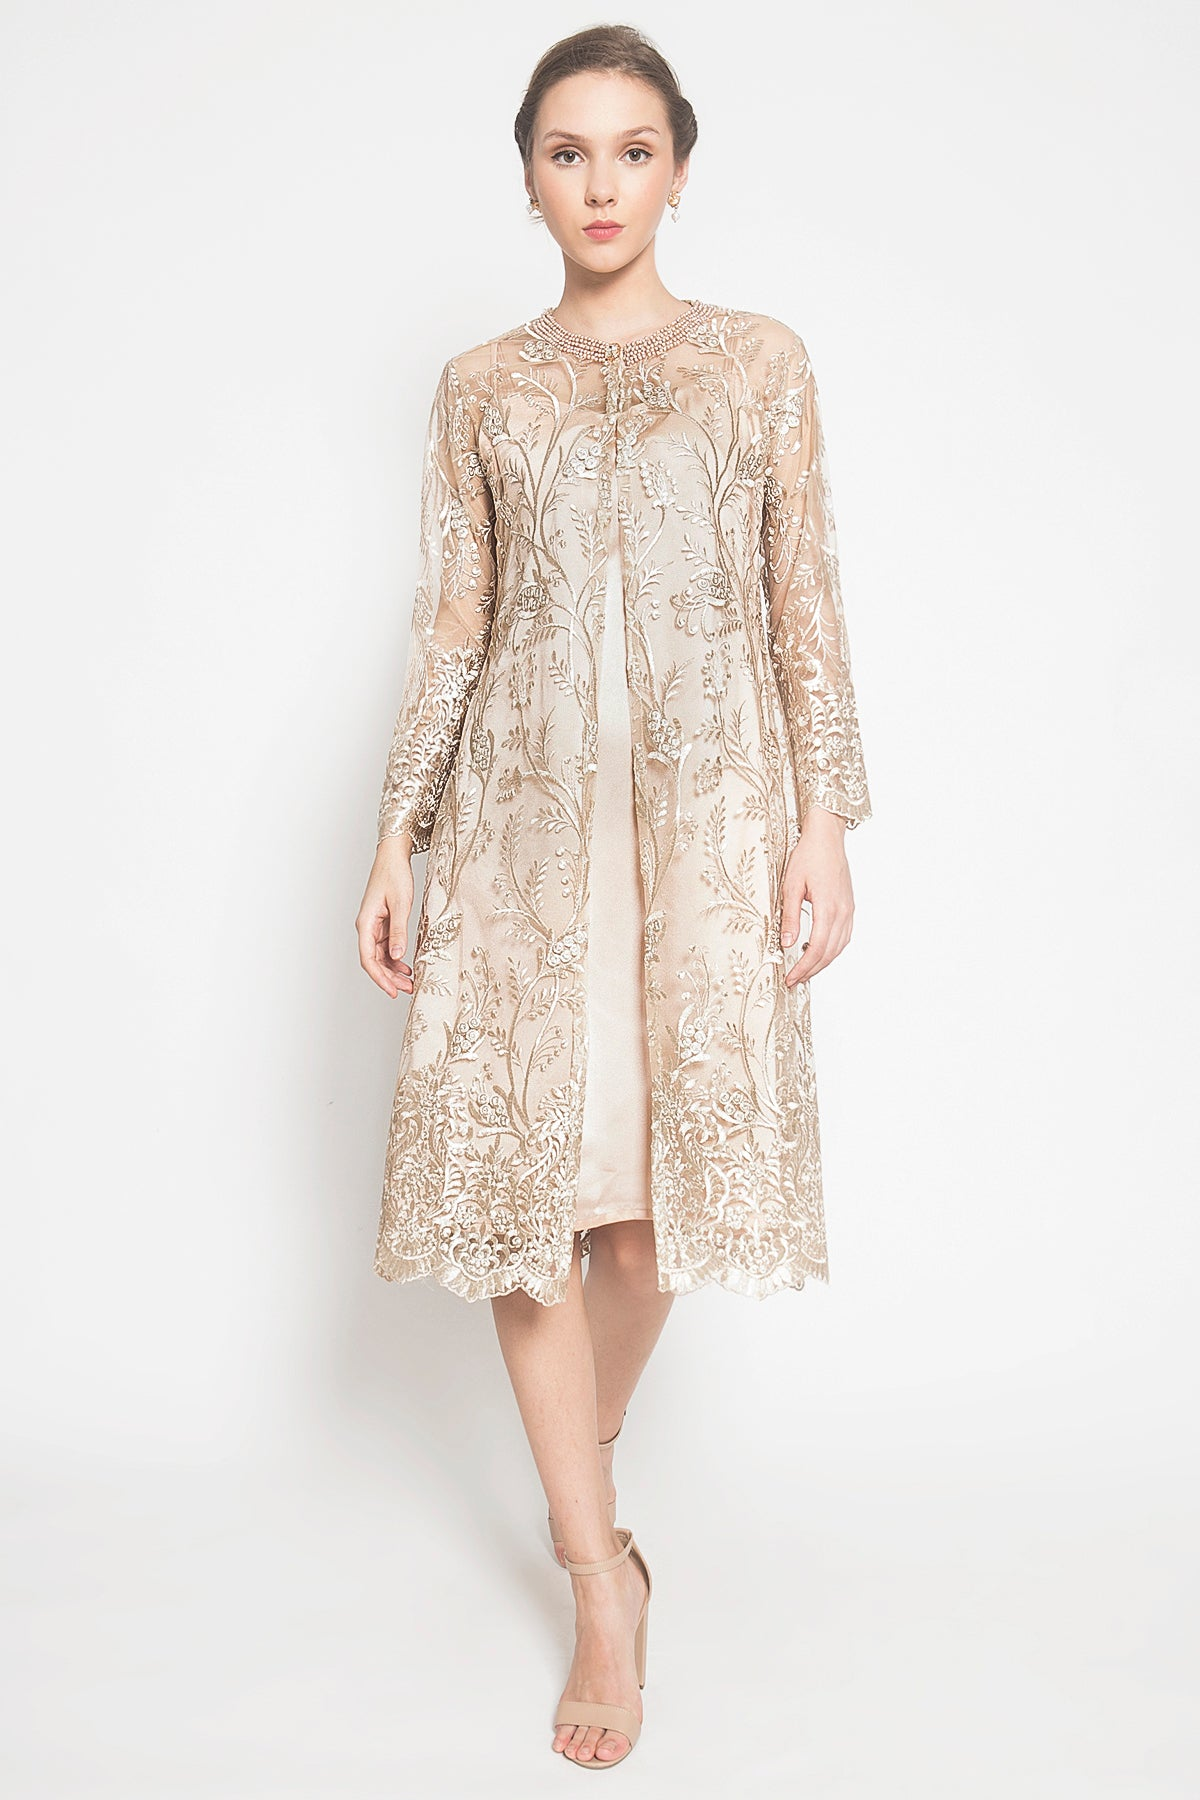 Arelle Dress in Soft Gold